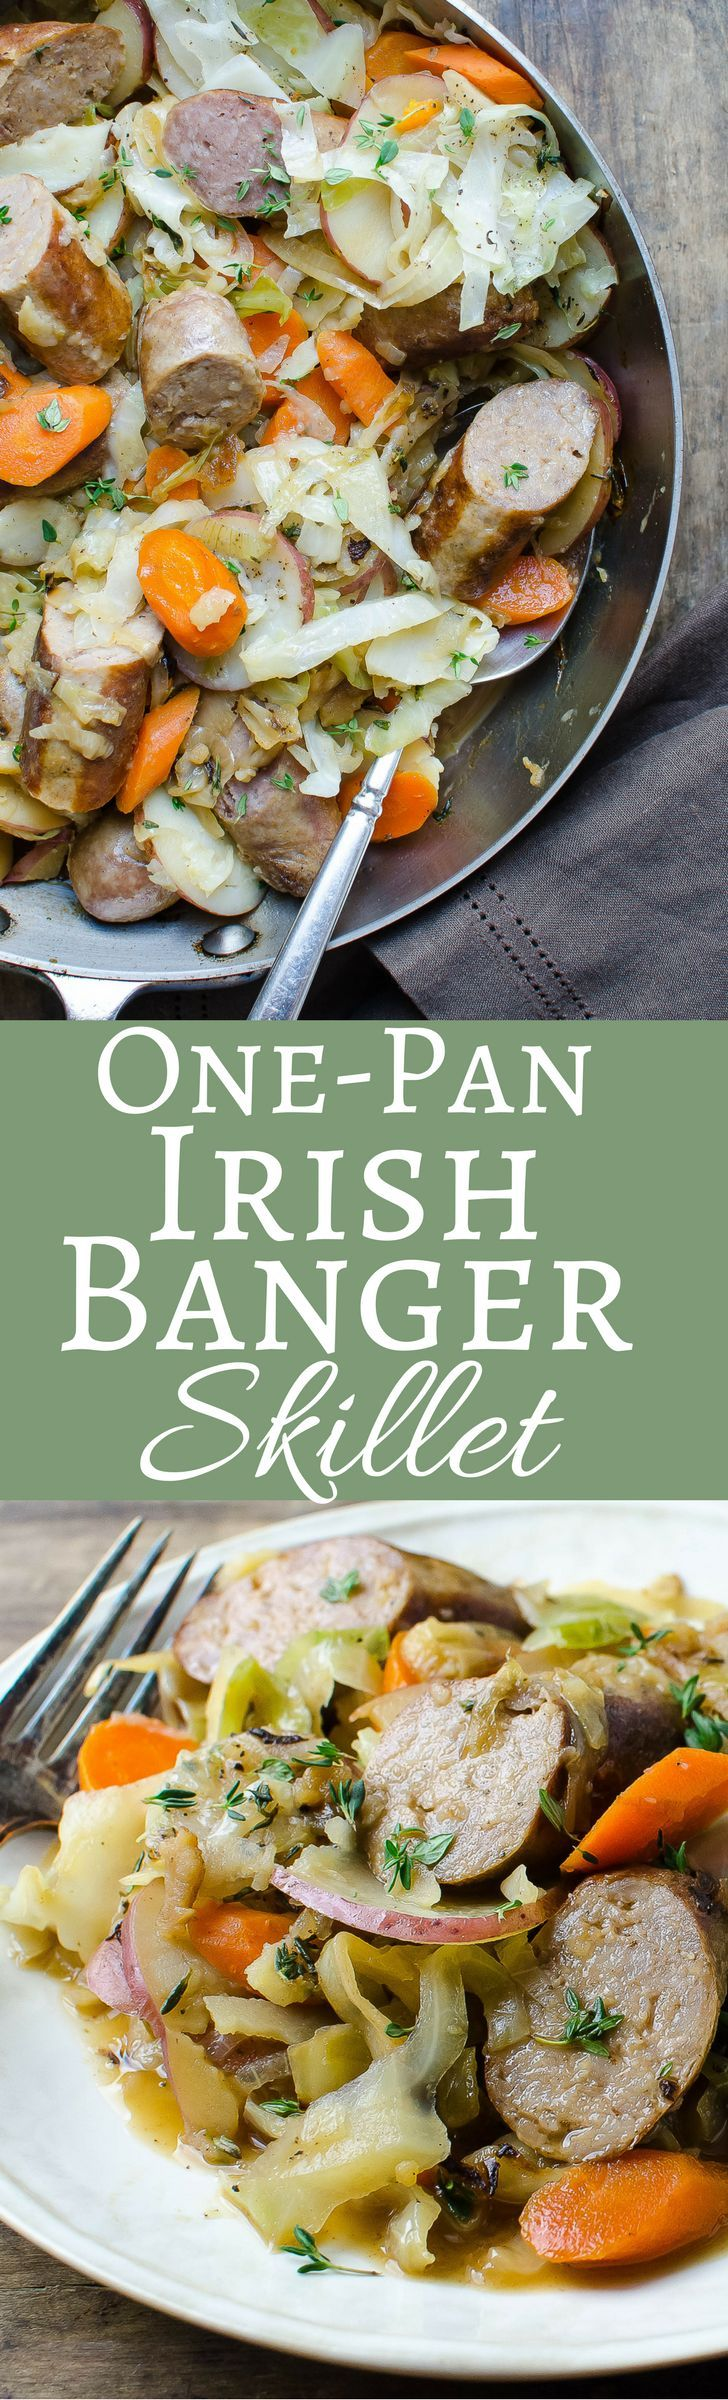 This easy one pan dinner is perfect for St. Patty's Day! Irish Banger Sausages, red potatoes, carrots and cabbage round out this meal!